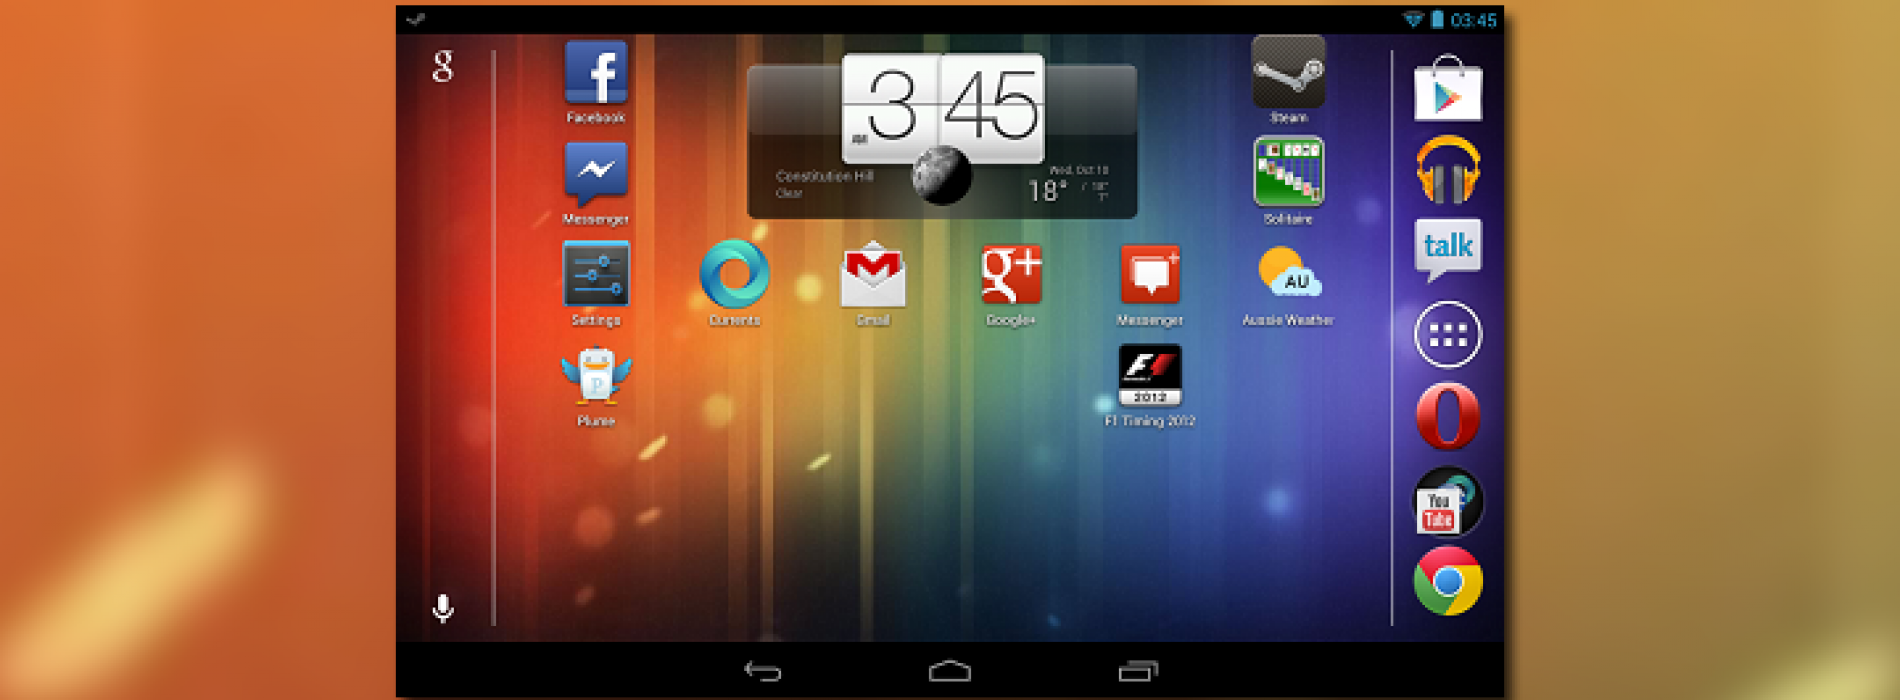 Android 4.1.2 debuts with bug fixes, landscape support for Nexus 7